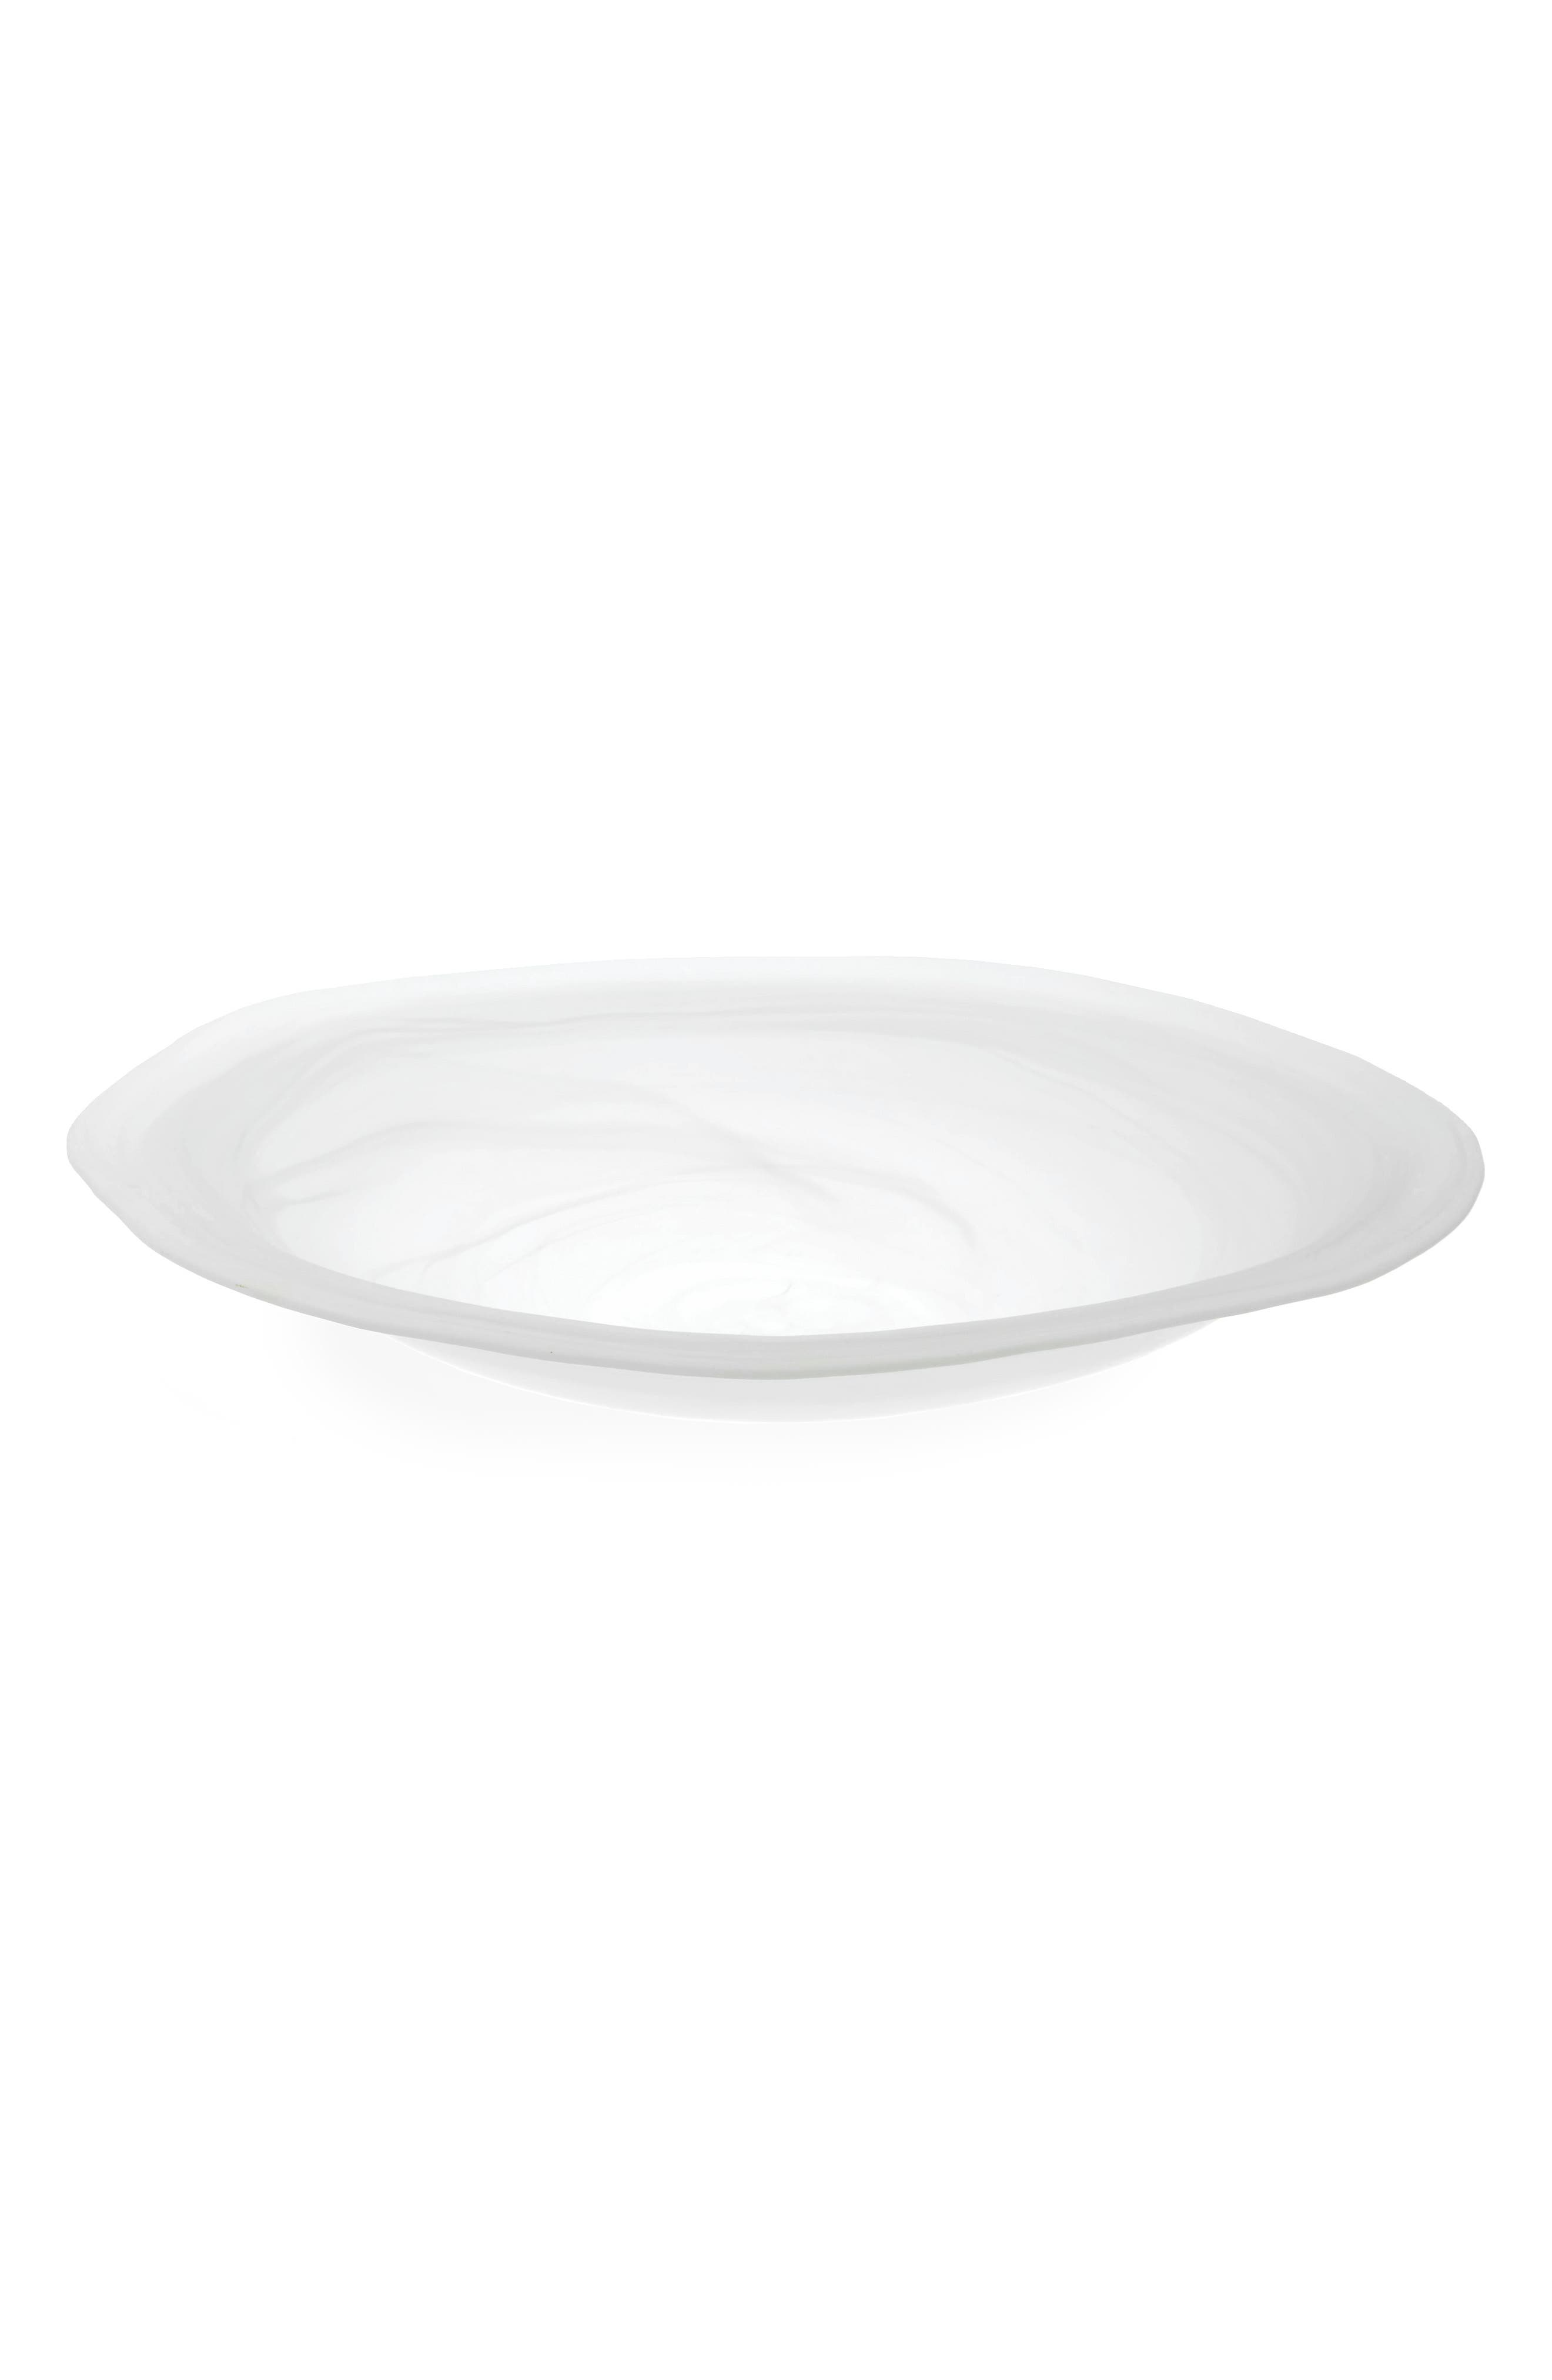 Frosted Alabaster Glass Platter,                             Main thumbnail 1, color,                             100